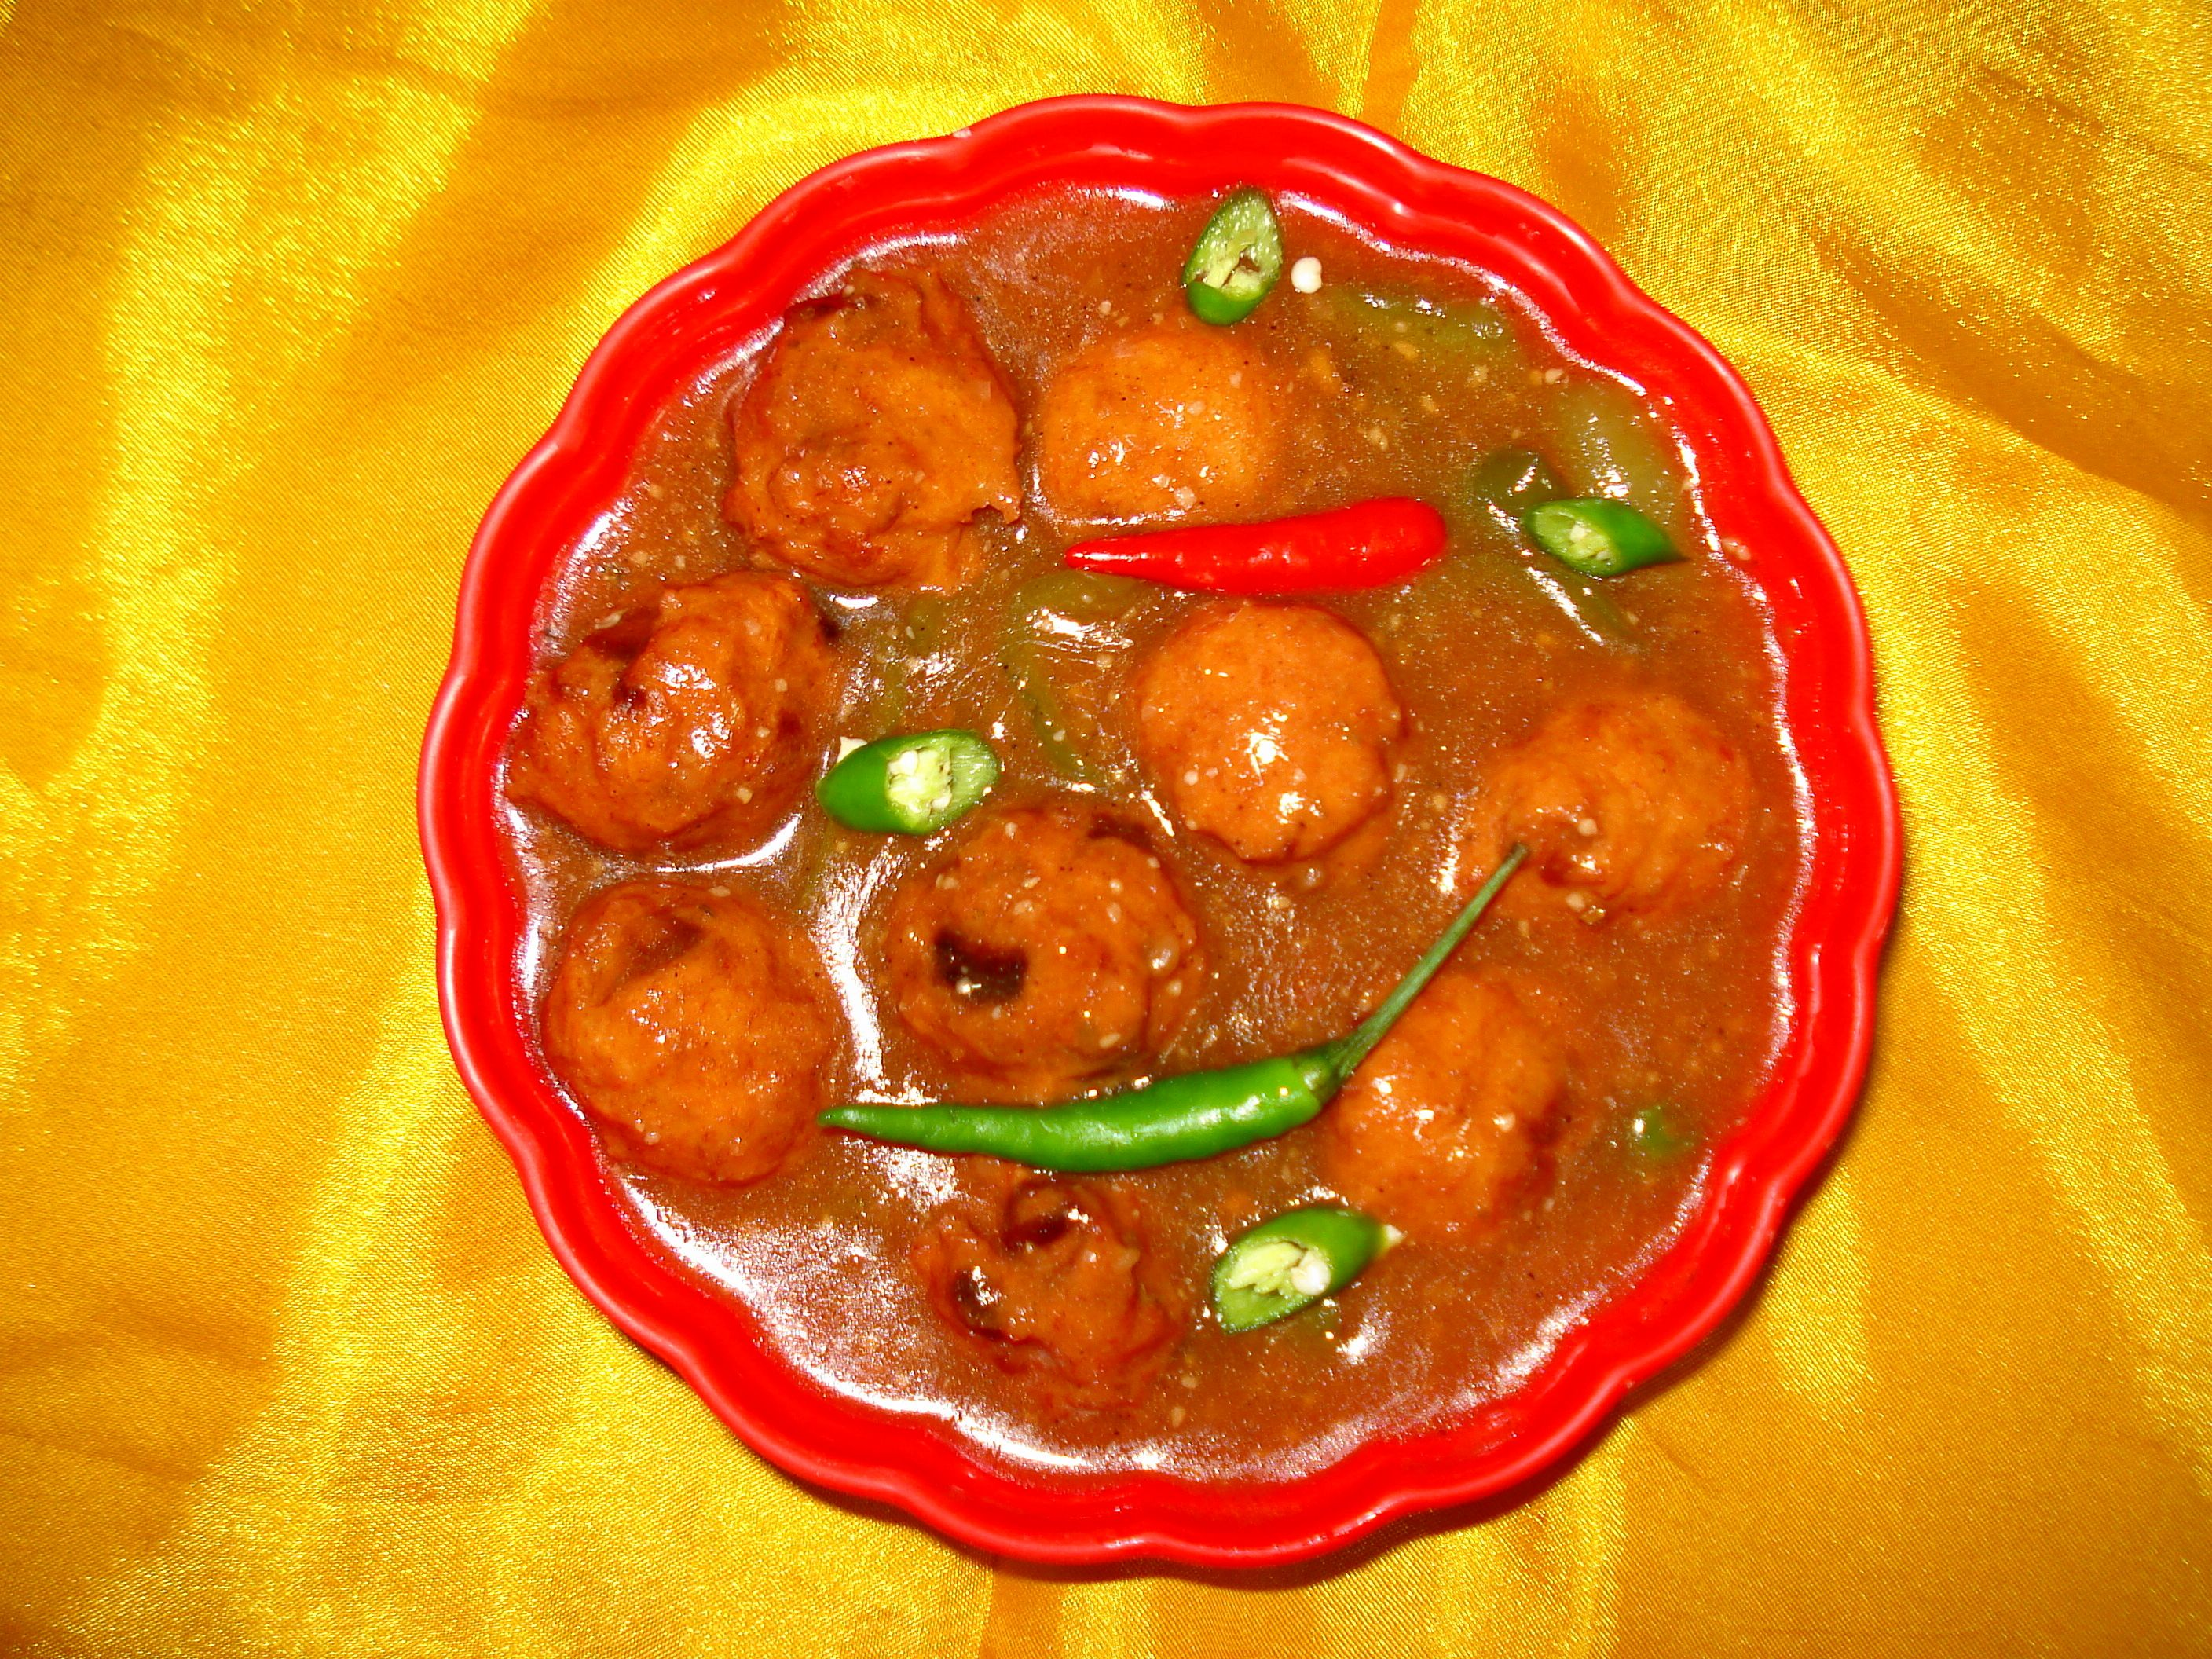 Cuisine of karachi chinese chicken manchurian food forumfinder Image collections